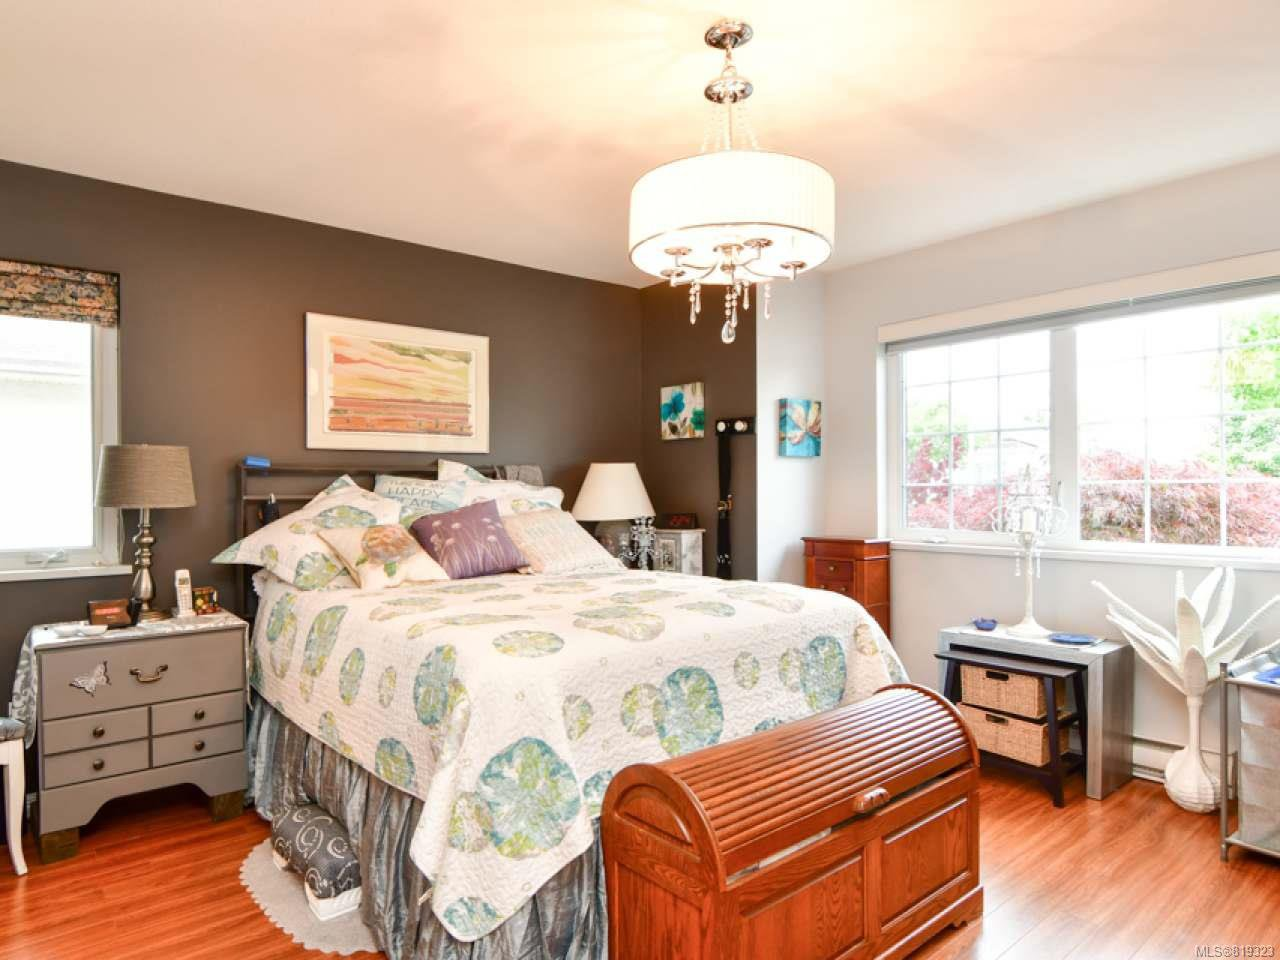 Photo 19: Photos: 35 2055 Galerno Rd in CAMPBELL RIVER: CR Willow Point Row/Townhouse for sale (Campbell River)  : MLS®# 819323